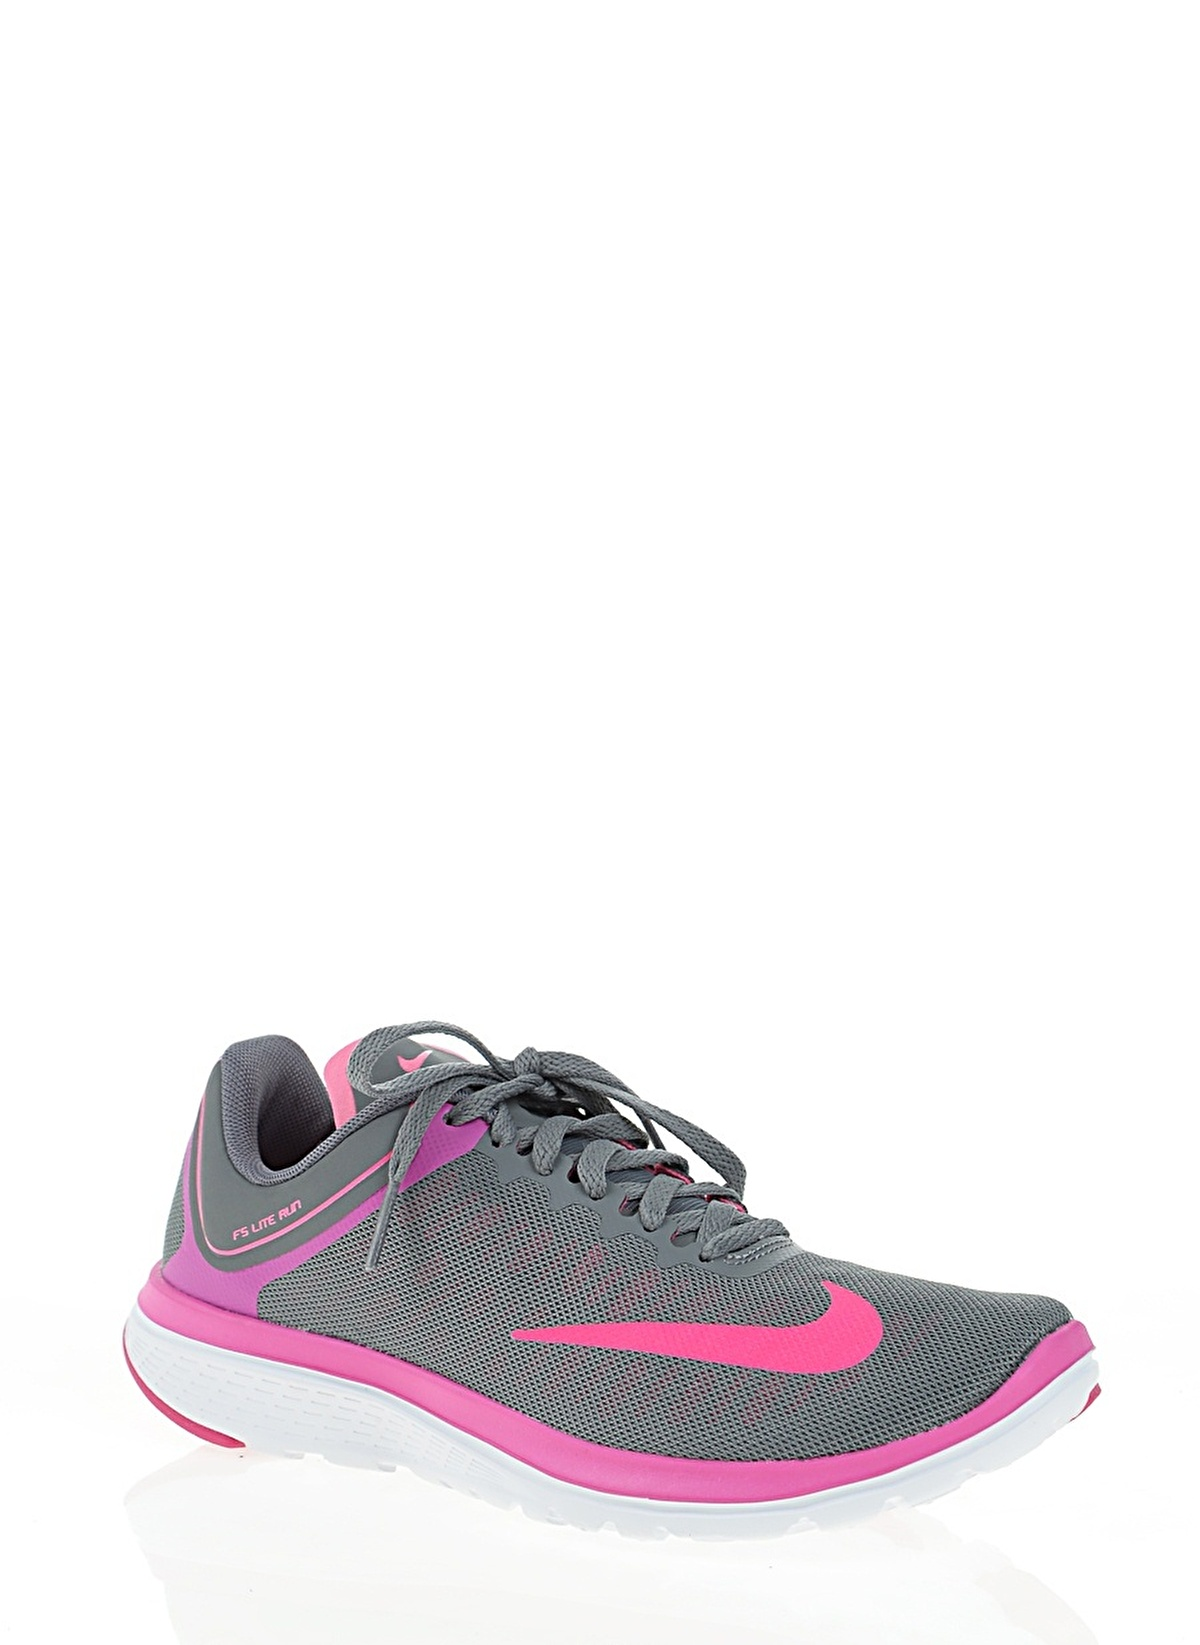 low priced 2d6ad 62c9e 852448-002-Wmns-Nike-Fs-Lite-Run-4